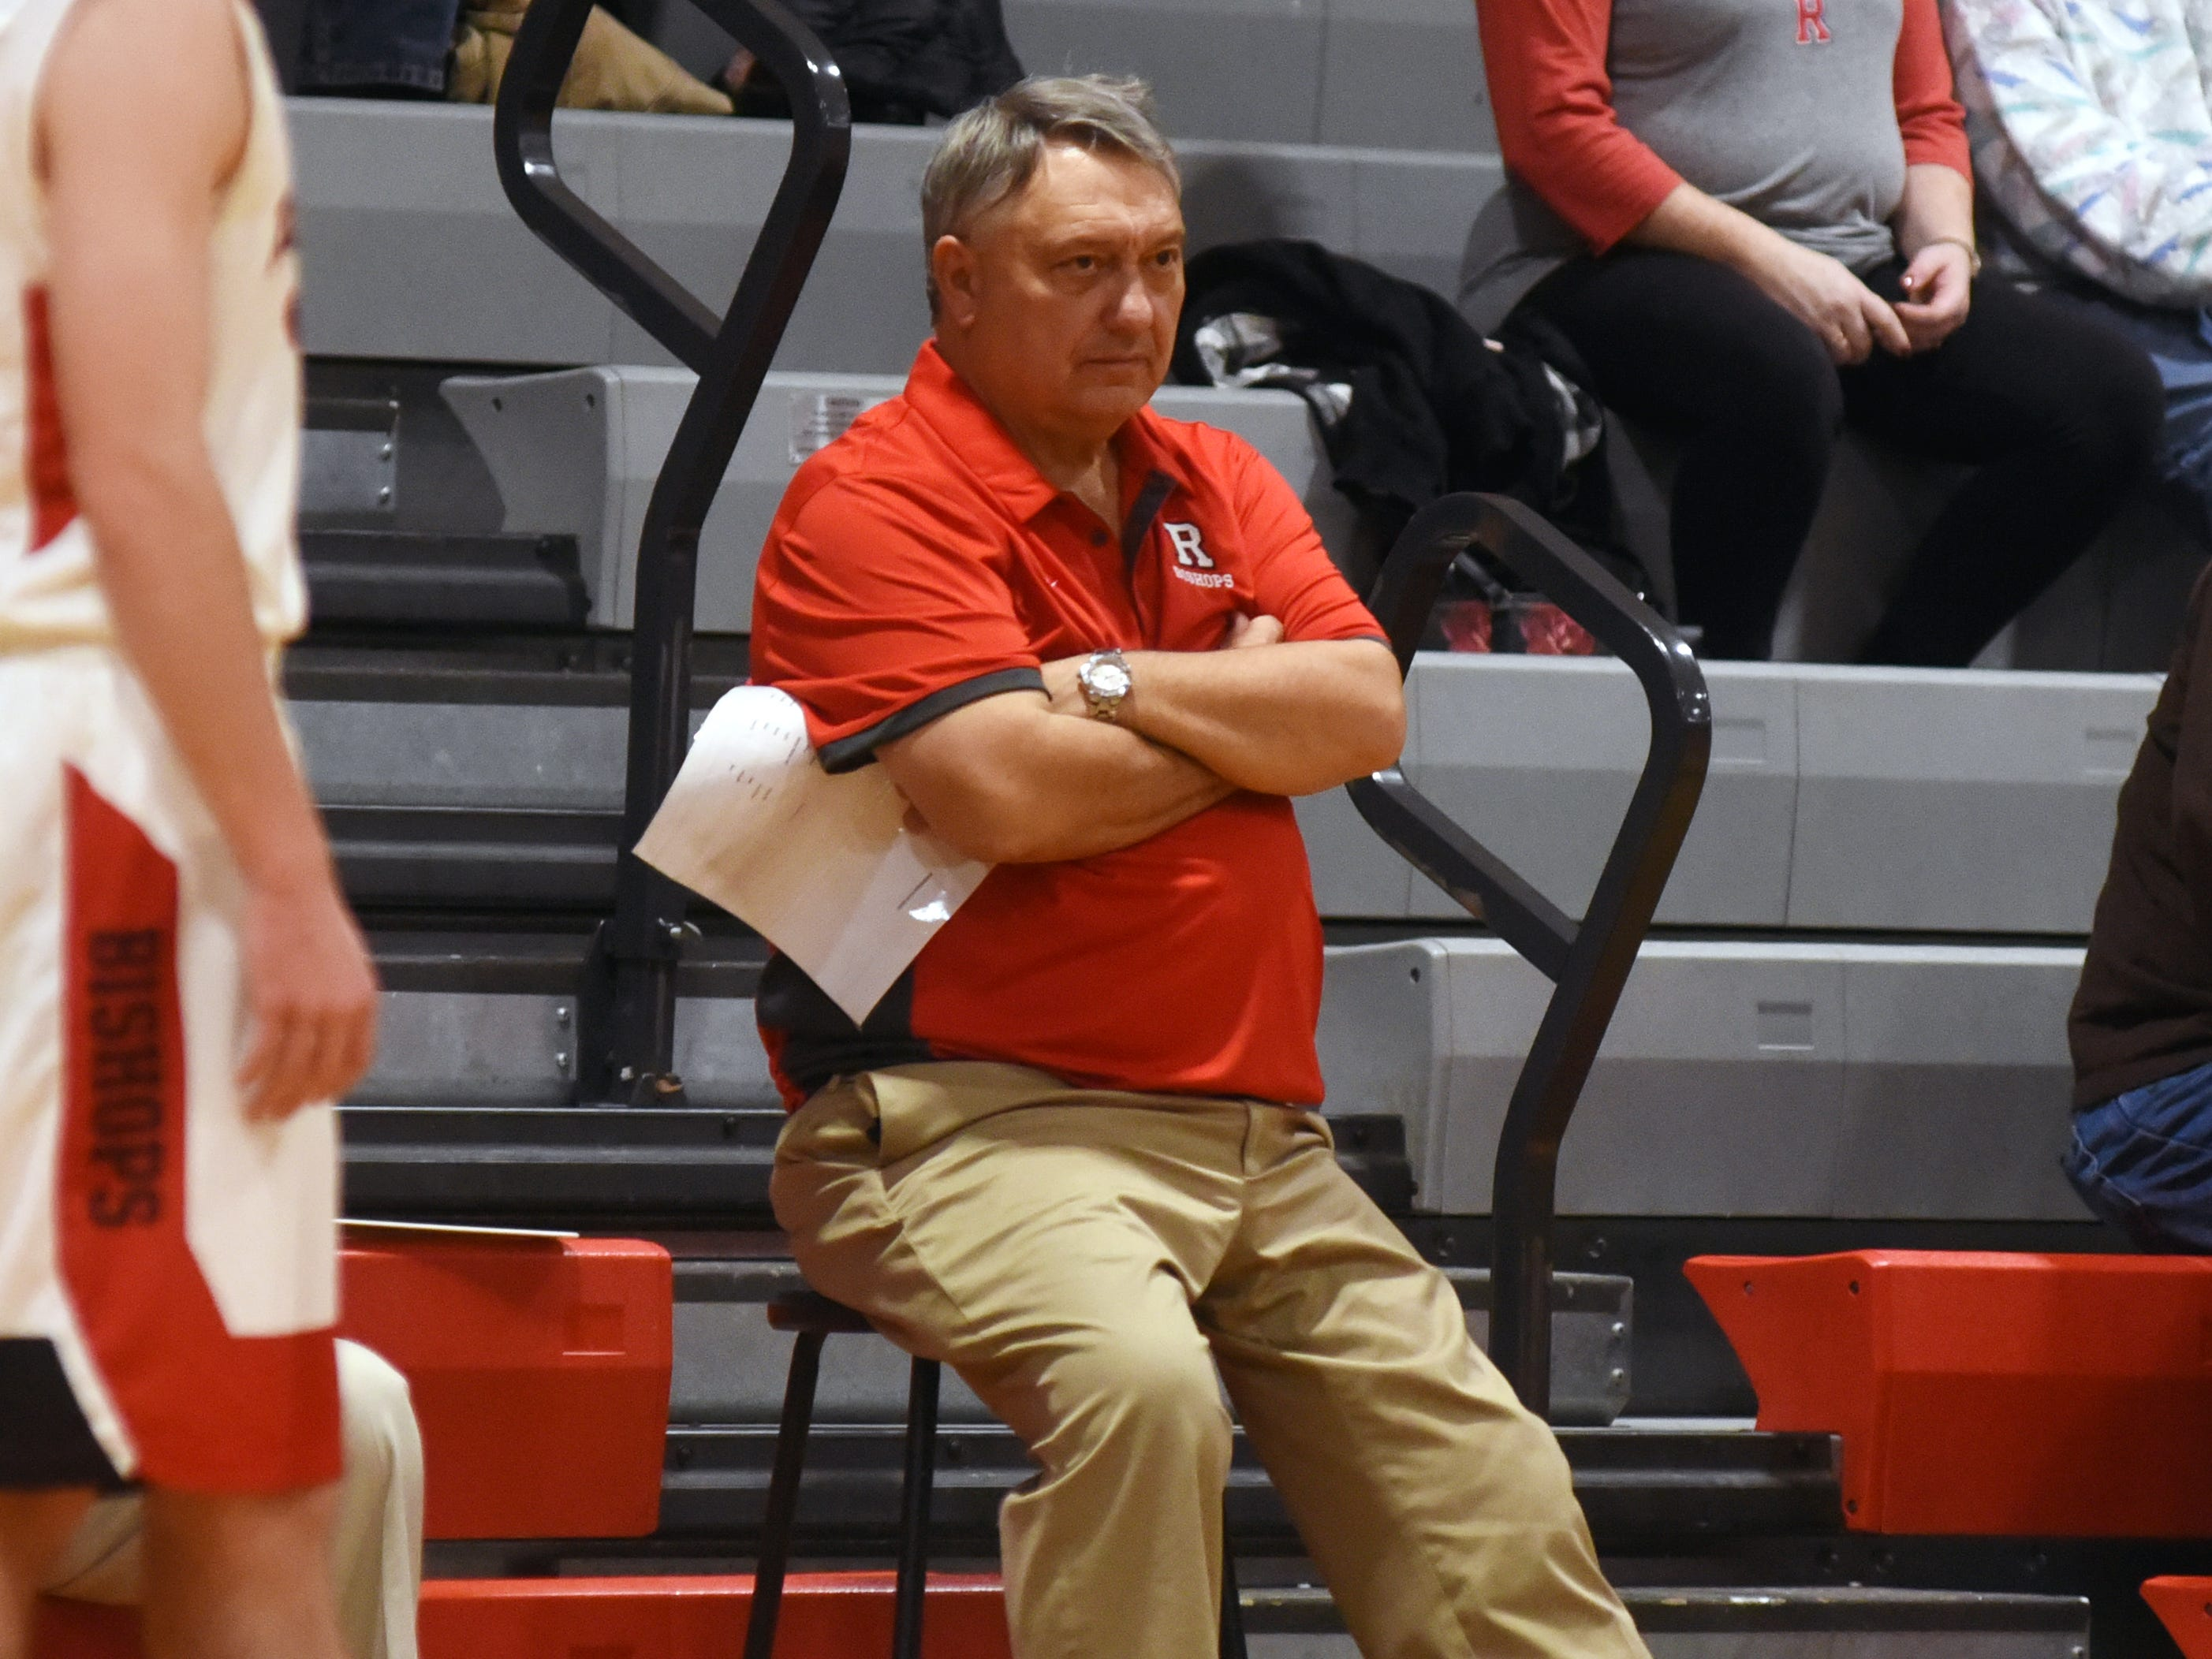 Rosecrans coach Todd Rock watches his team play against Liberty Christian on Monday night at Rogge Gymnasium. Rock  is back to lead a high-energy group of Bishops in 2018-19.